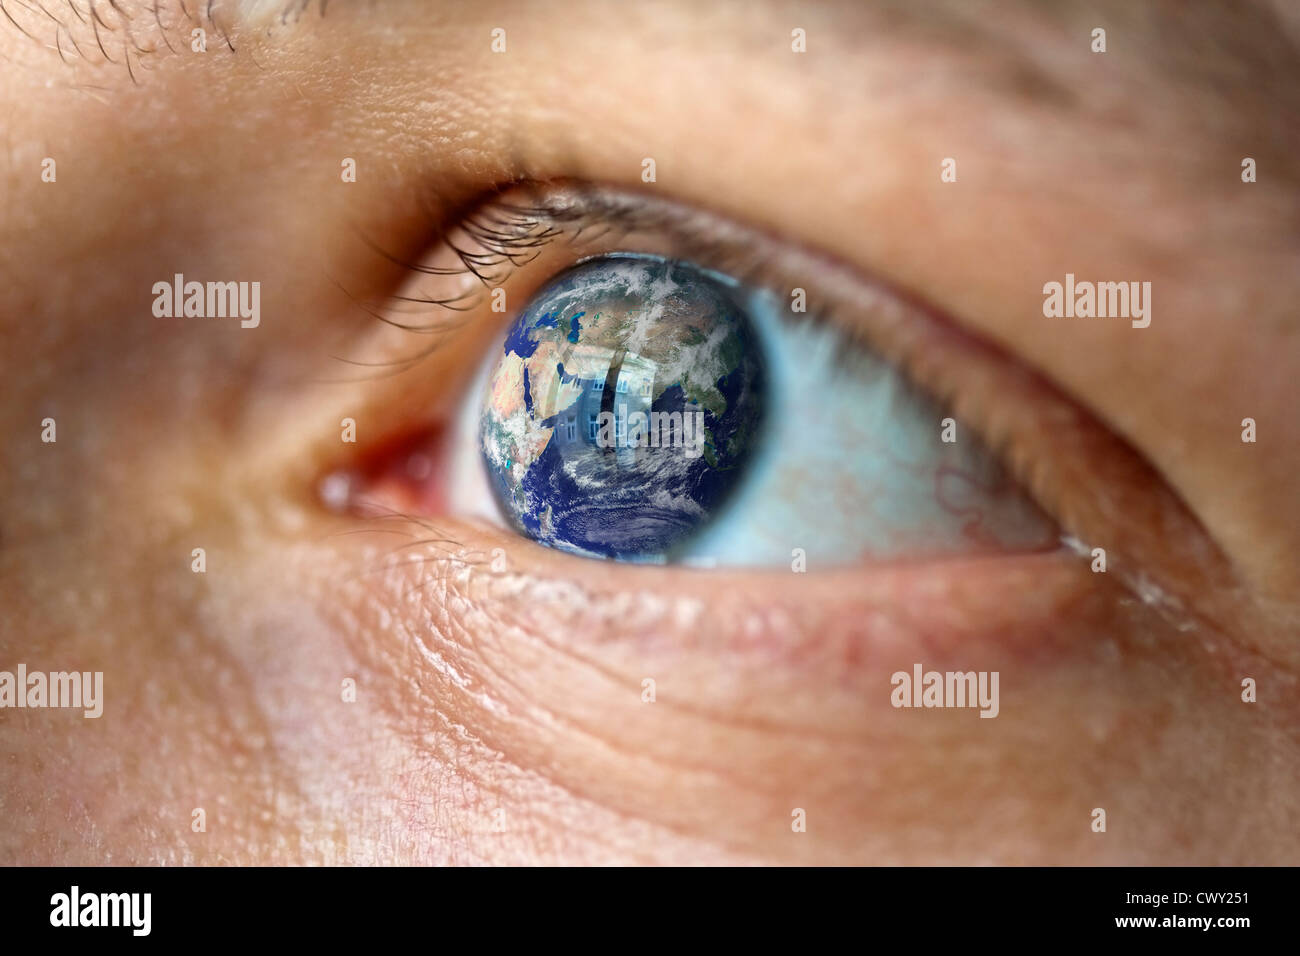 Close-Up of a male face with the earth in the eye - Stock Image